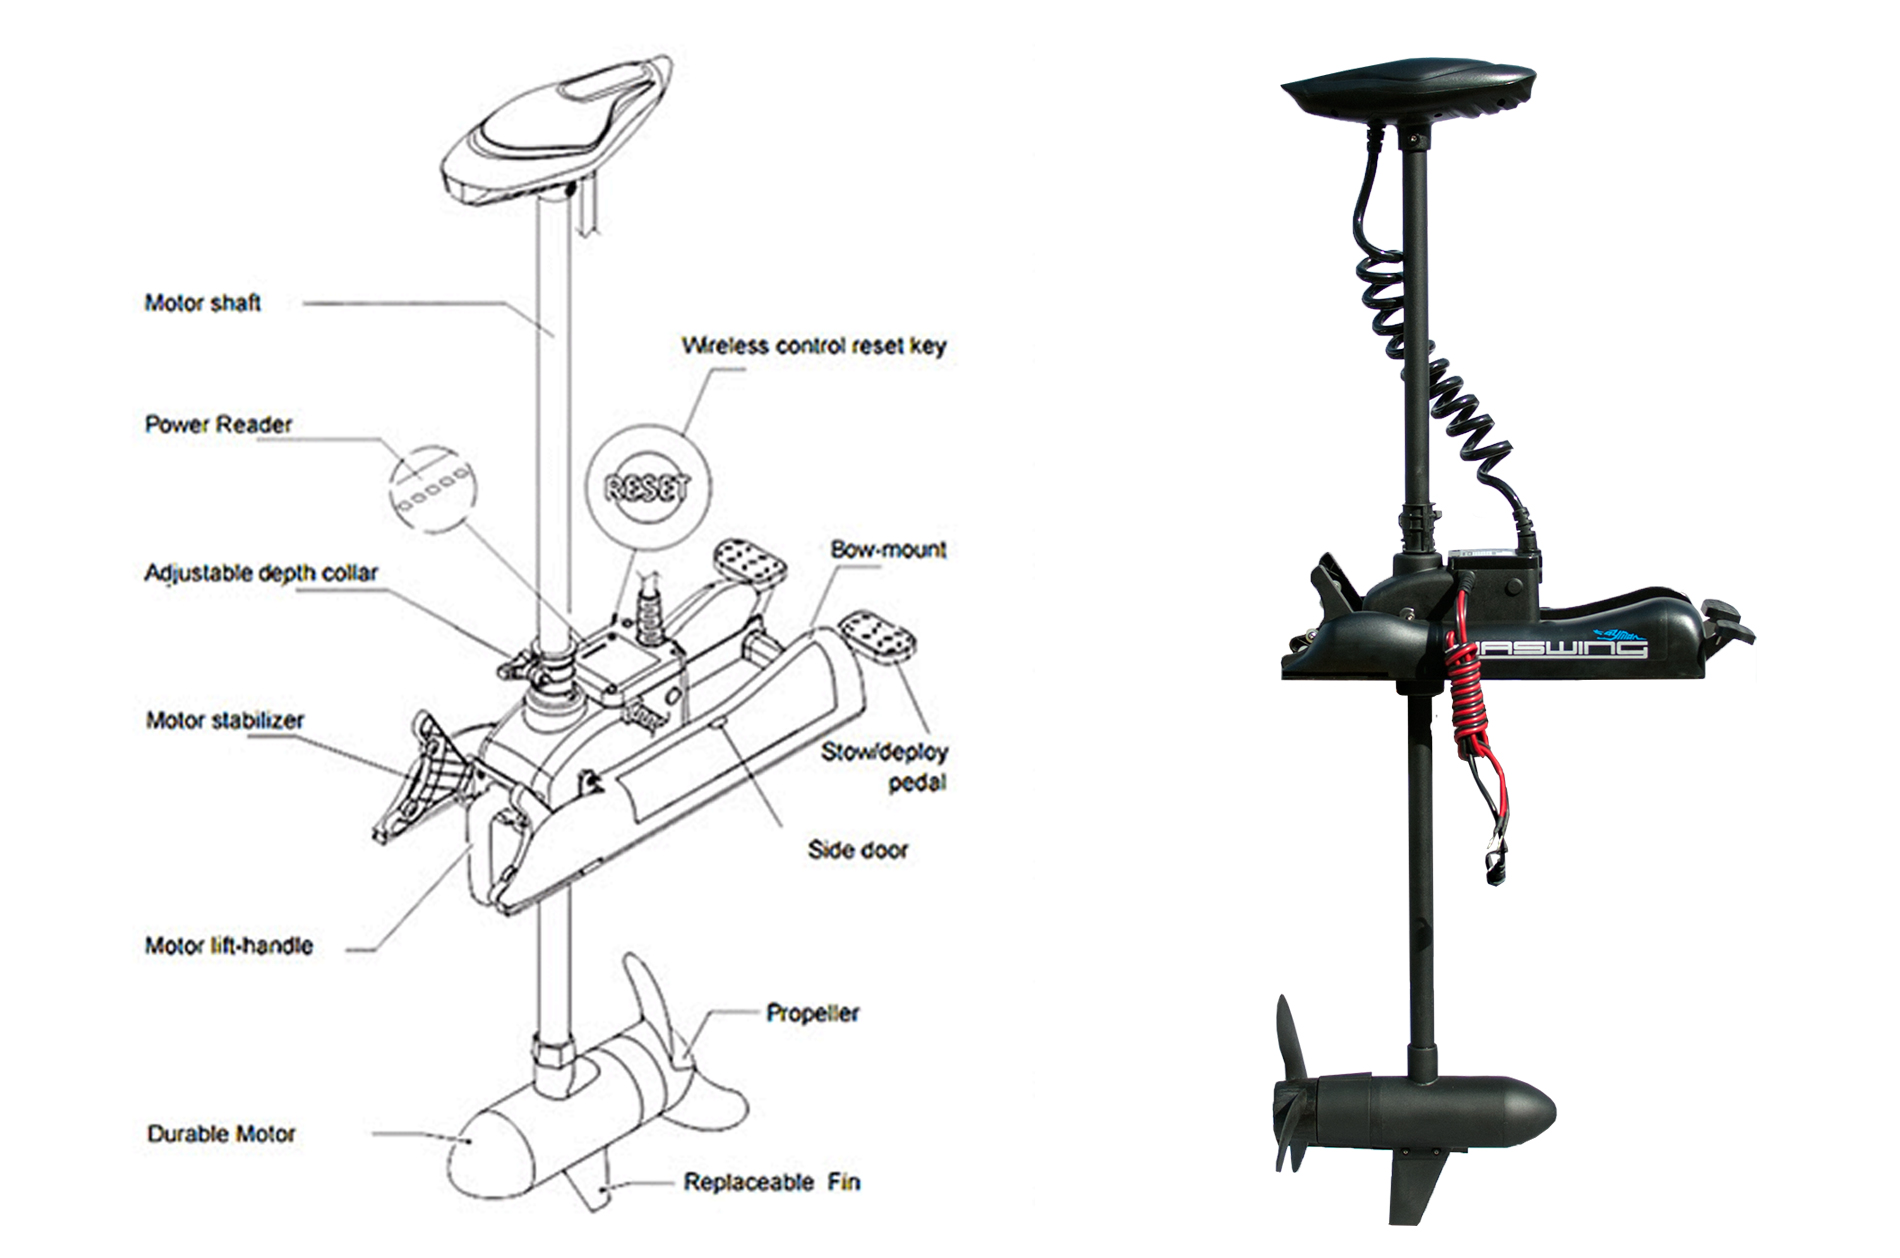 Bow mount trolling motor cayman 80 lbs electric haswing for Mounting a transom mount trolling motor on the bow